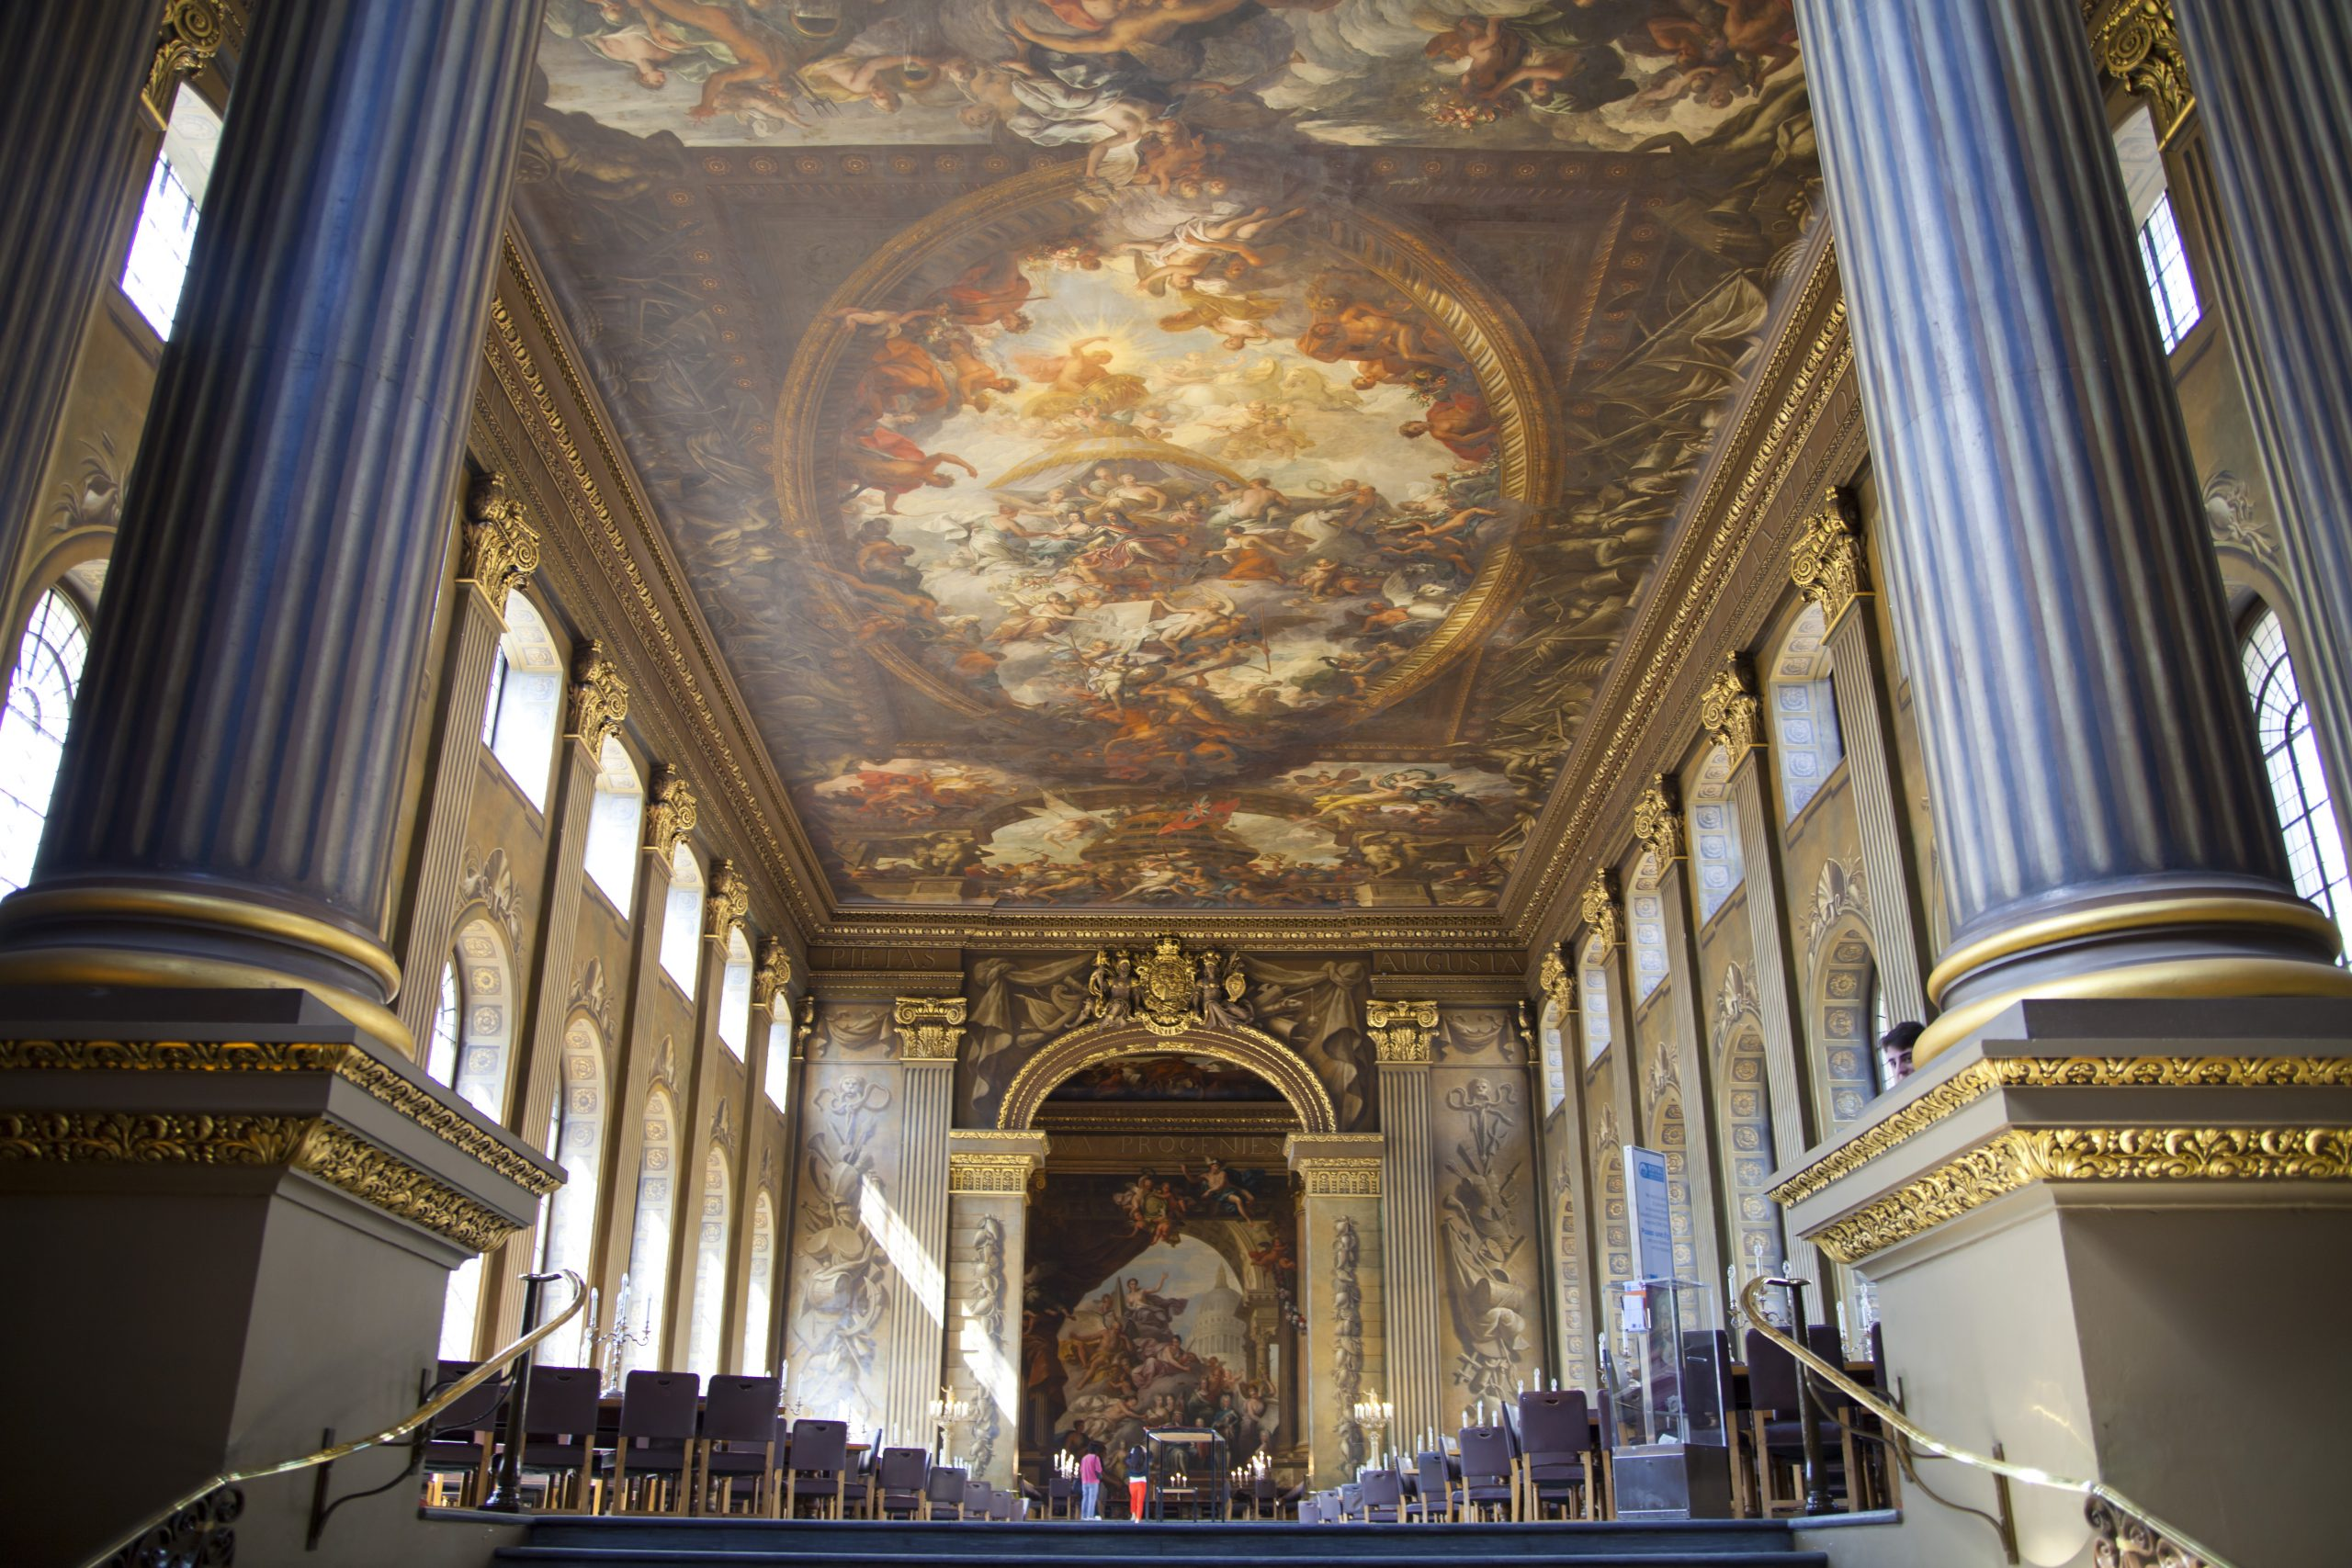 Add gazing at the painted hall to your London itinerary